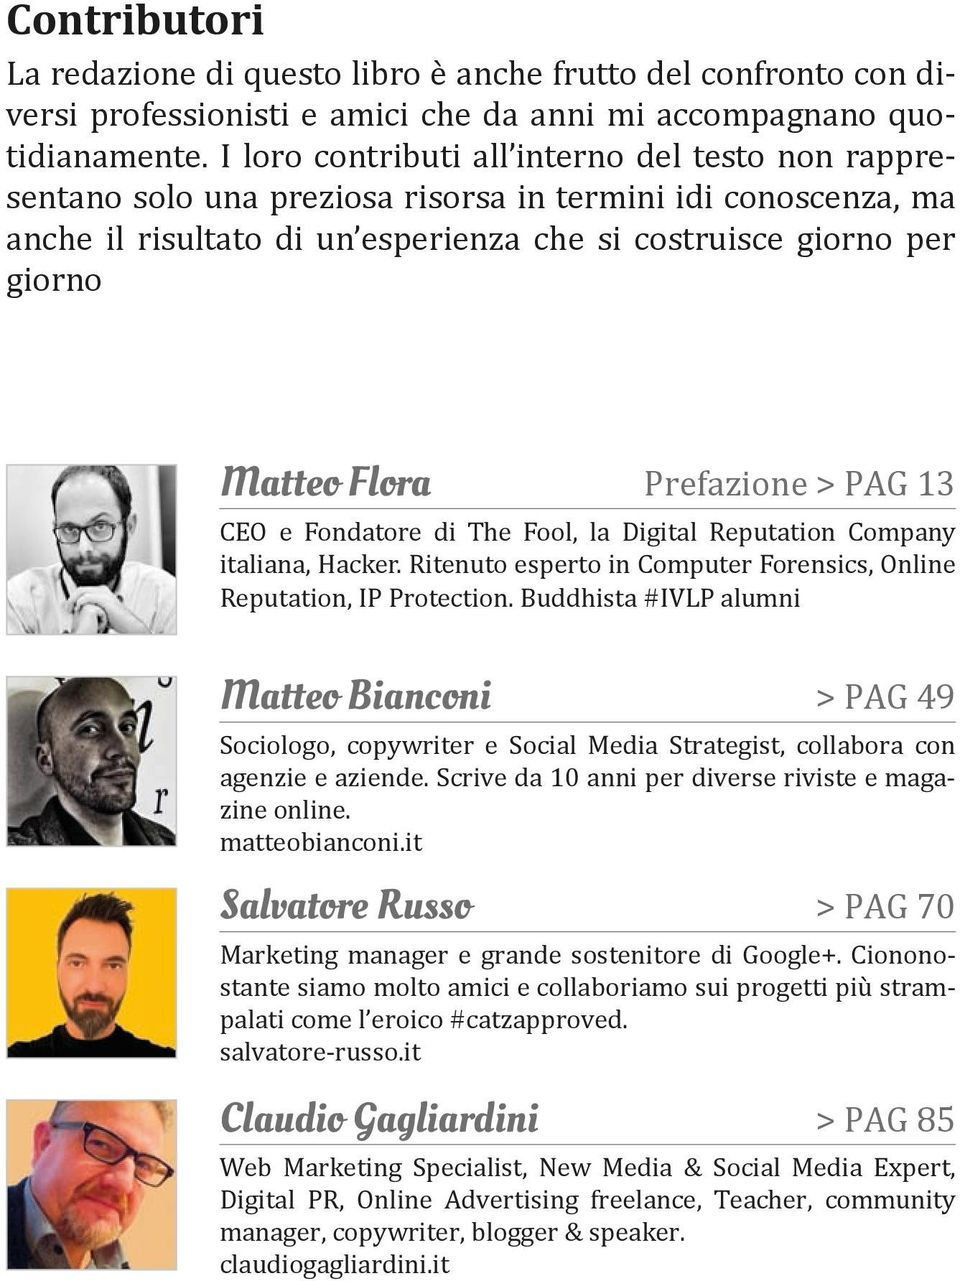 Prefazione > PAG 13 CEO e Fondatore di The Fool, la Digital Reputation Company italiana, Hacker. Ritenuto esperto in Computer Forensics, Online Reputation, IP Protection.